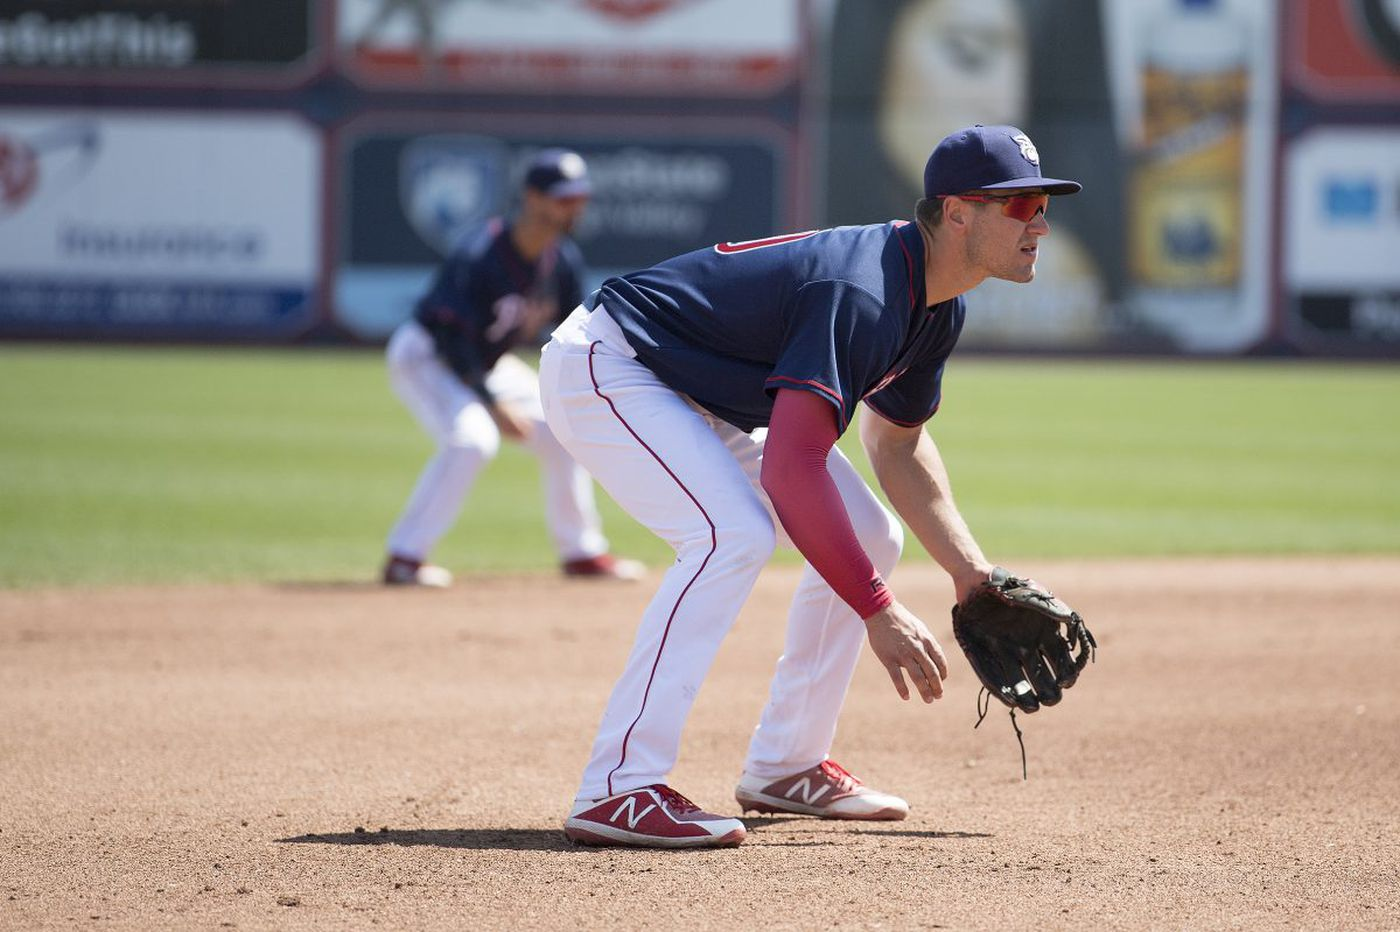 Mitch Walding finally answered his call to the Phillies